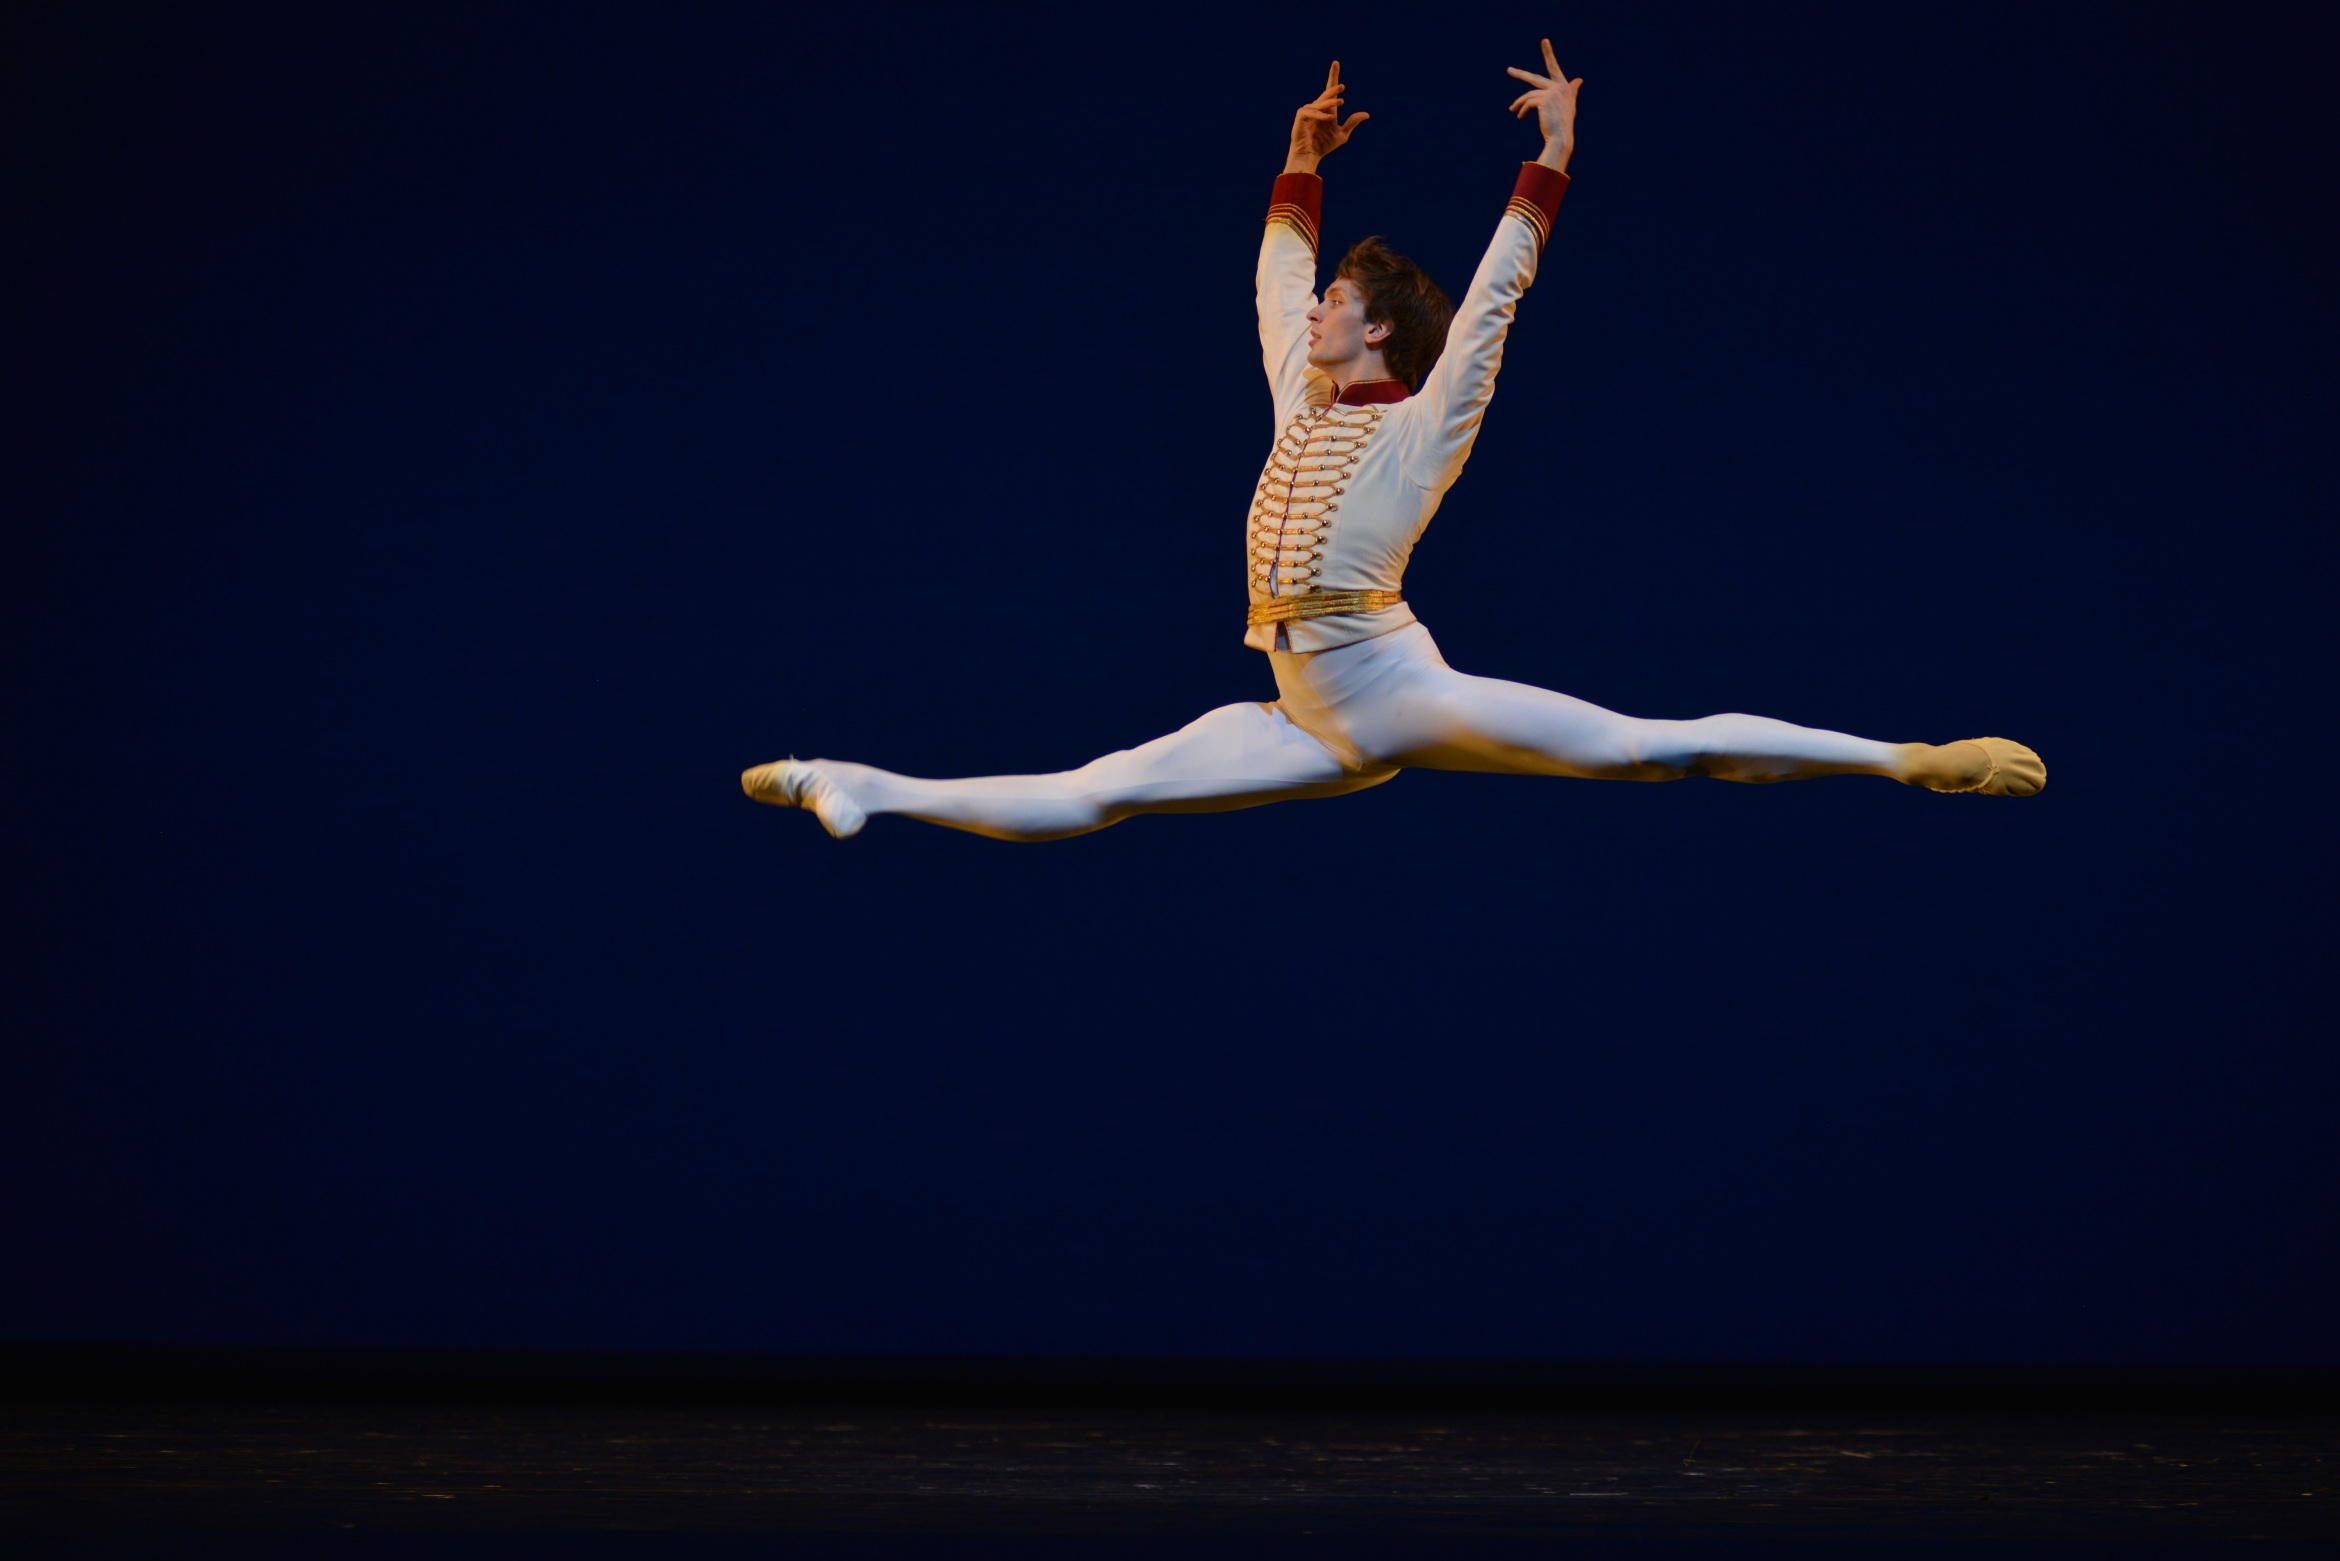 Bolshoi dancer Artemiy Belyakov in Celebration courtesy Igor Zakharkin